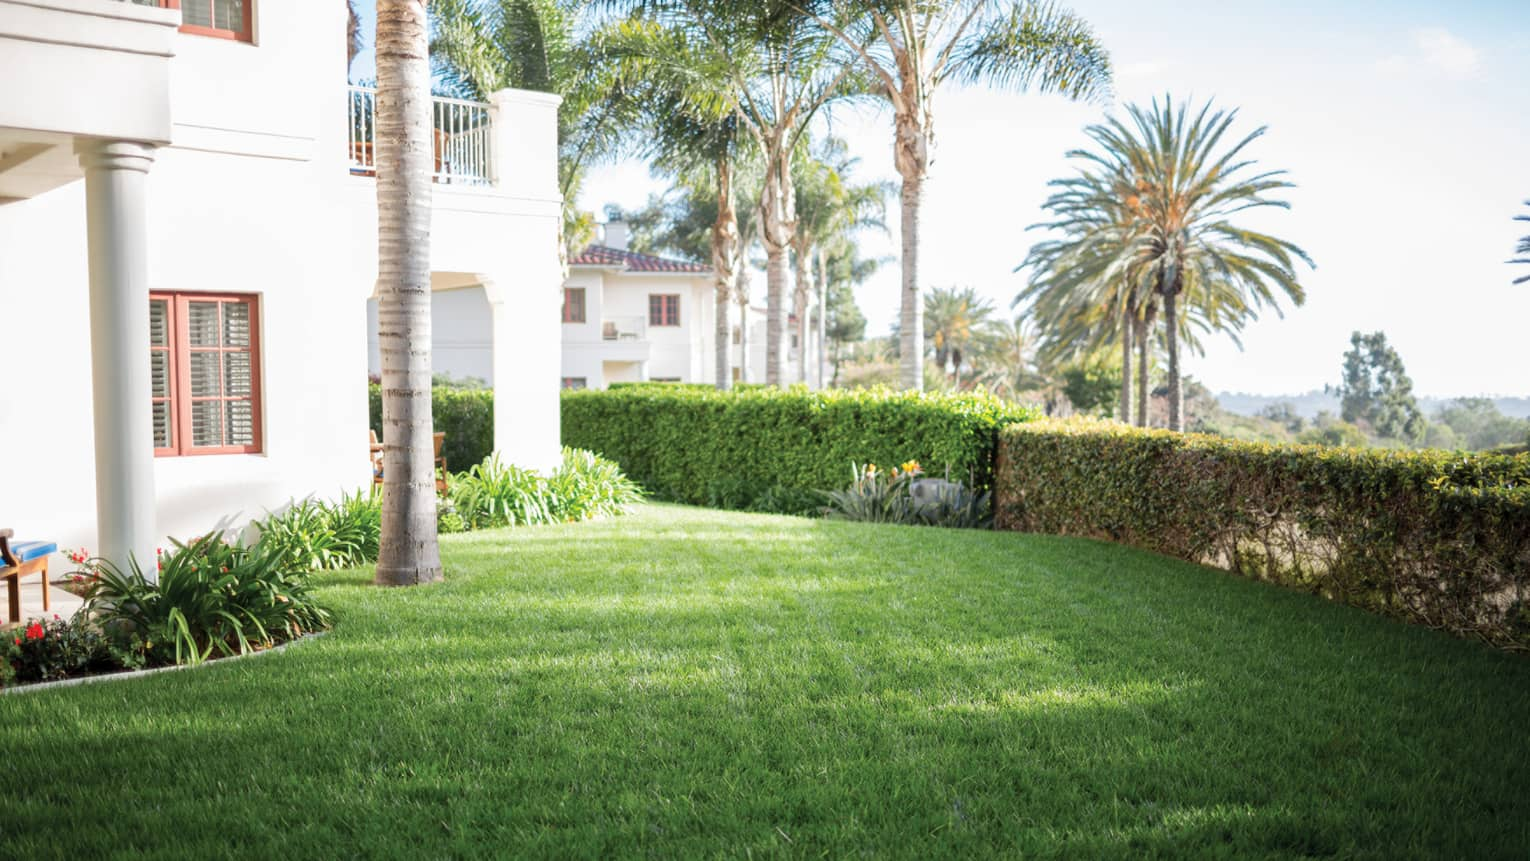 Lush green lawn in front of hotel, surrounded by landscaped bushes, plants and palm trees